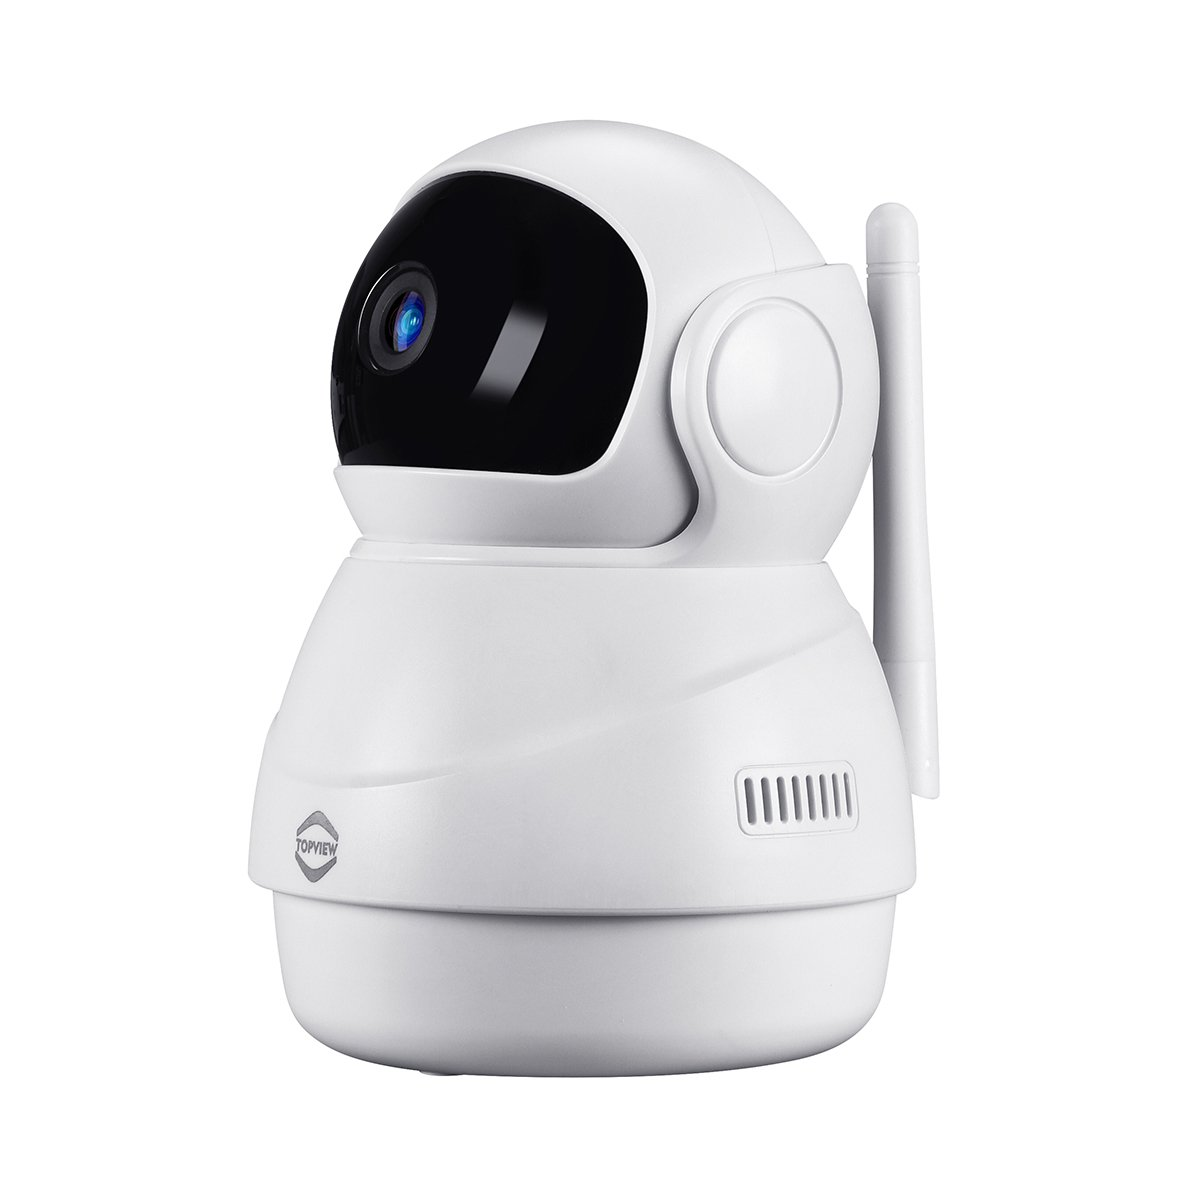 TopView Wireless Remote IP Camera HD 1080P Pan Tilt Zoom Indoor Security Surveillance Cameras for Home/Baby/Nanny/Pet/Office Two-Way Audio Night Vision iOS Android App (White)